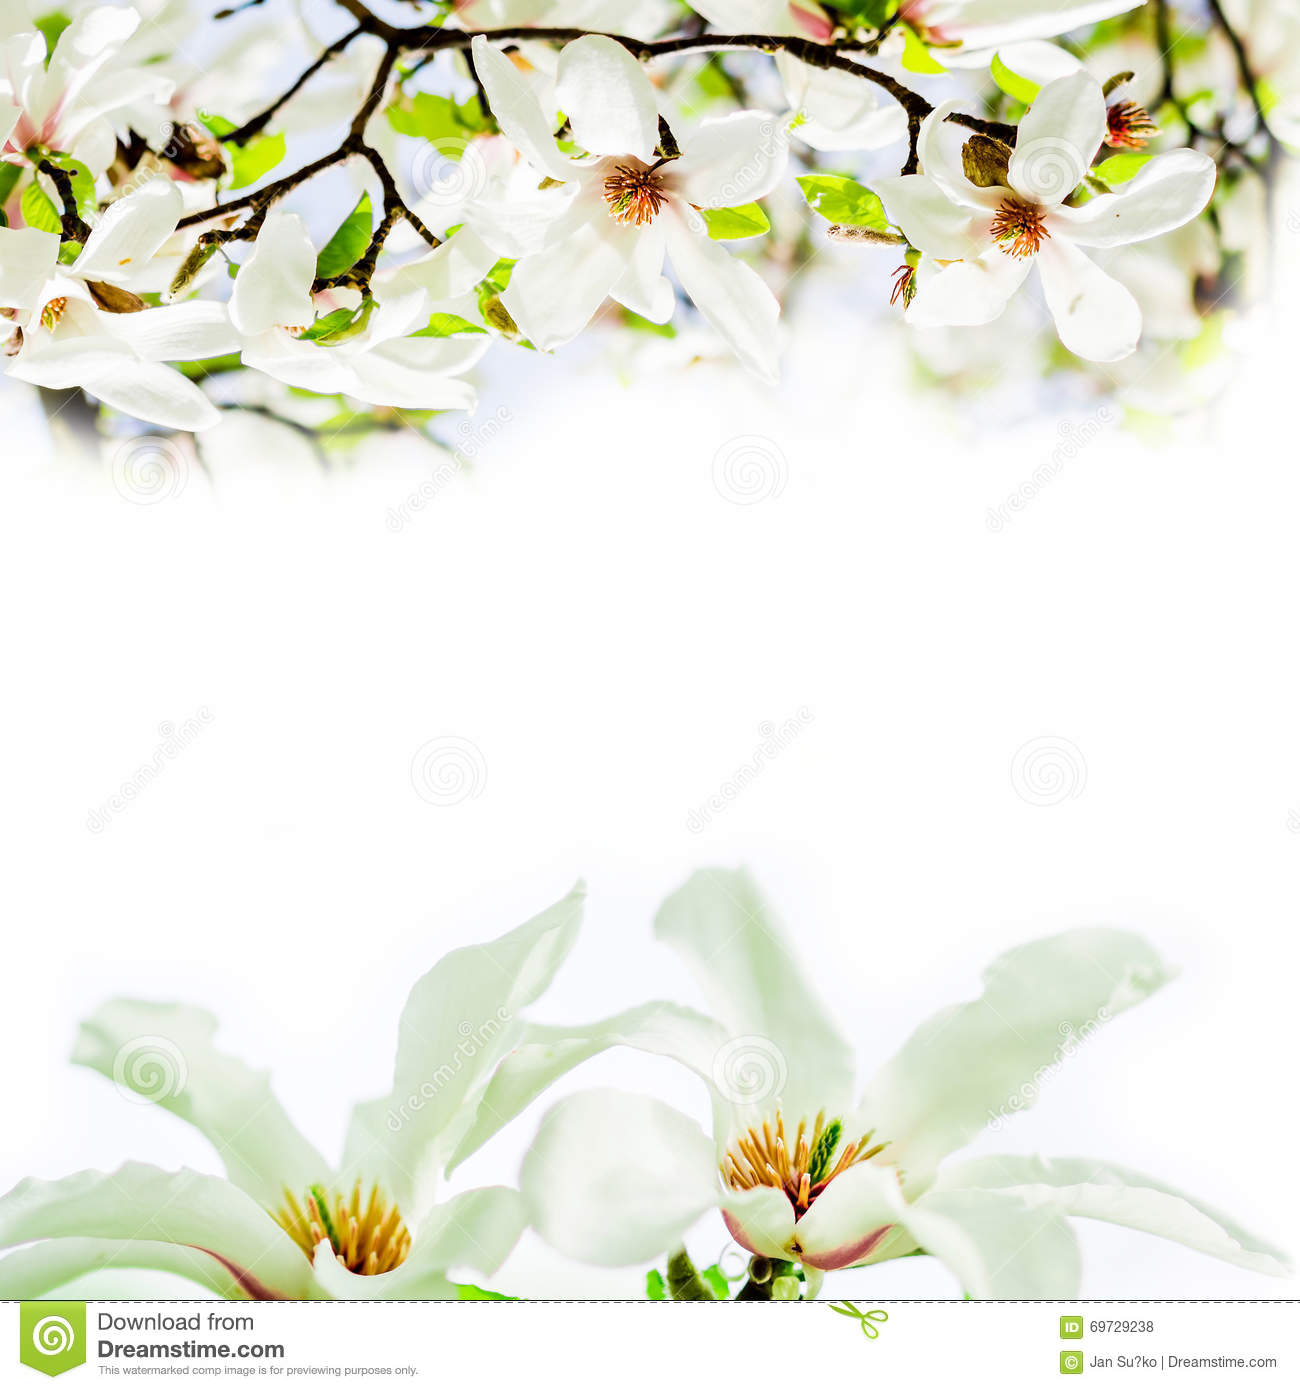 Magnolia Stellata Blossoming Face To Face Stock Photo.